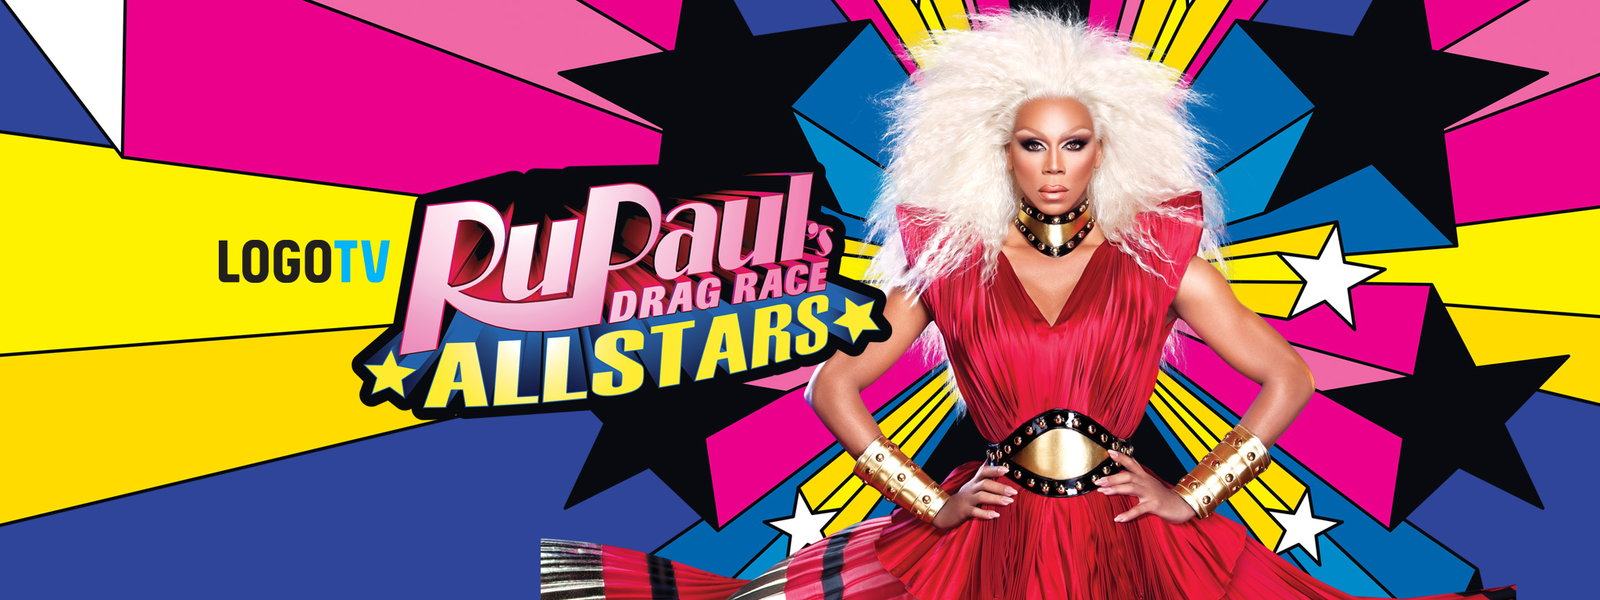 Watch all stars untucked online dating